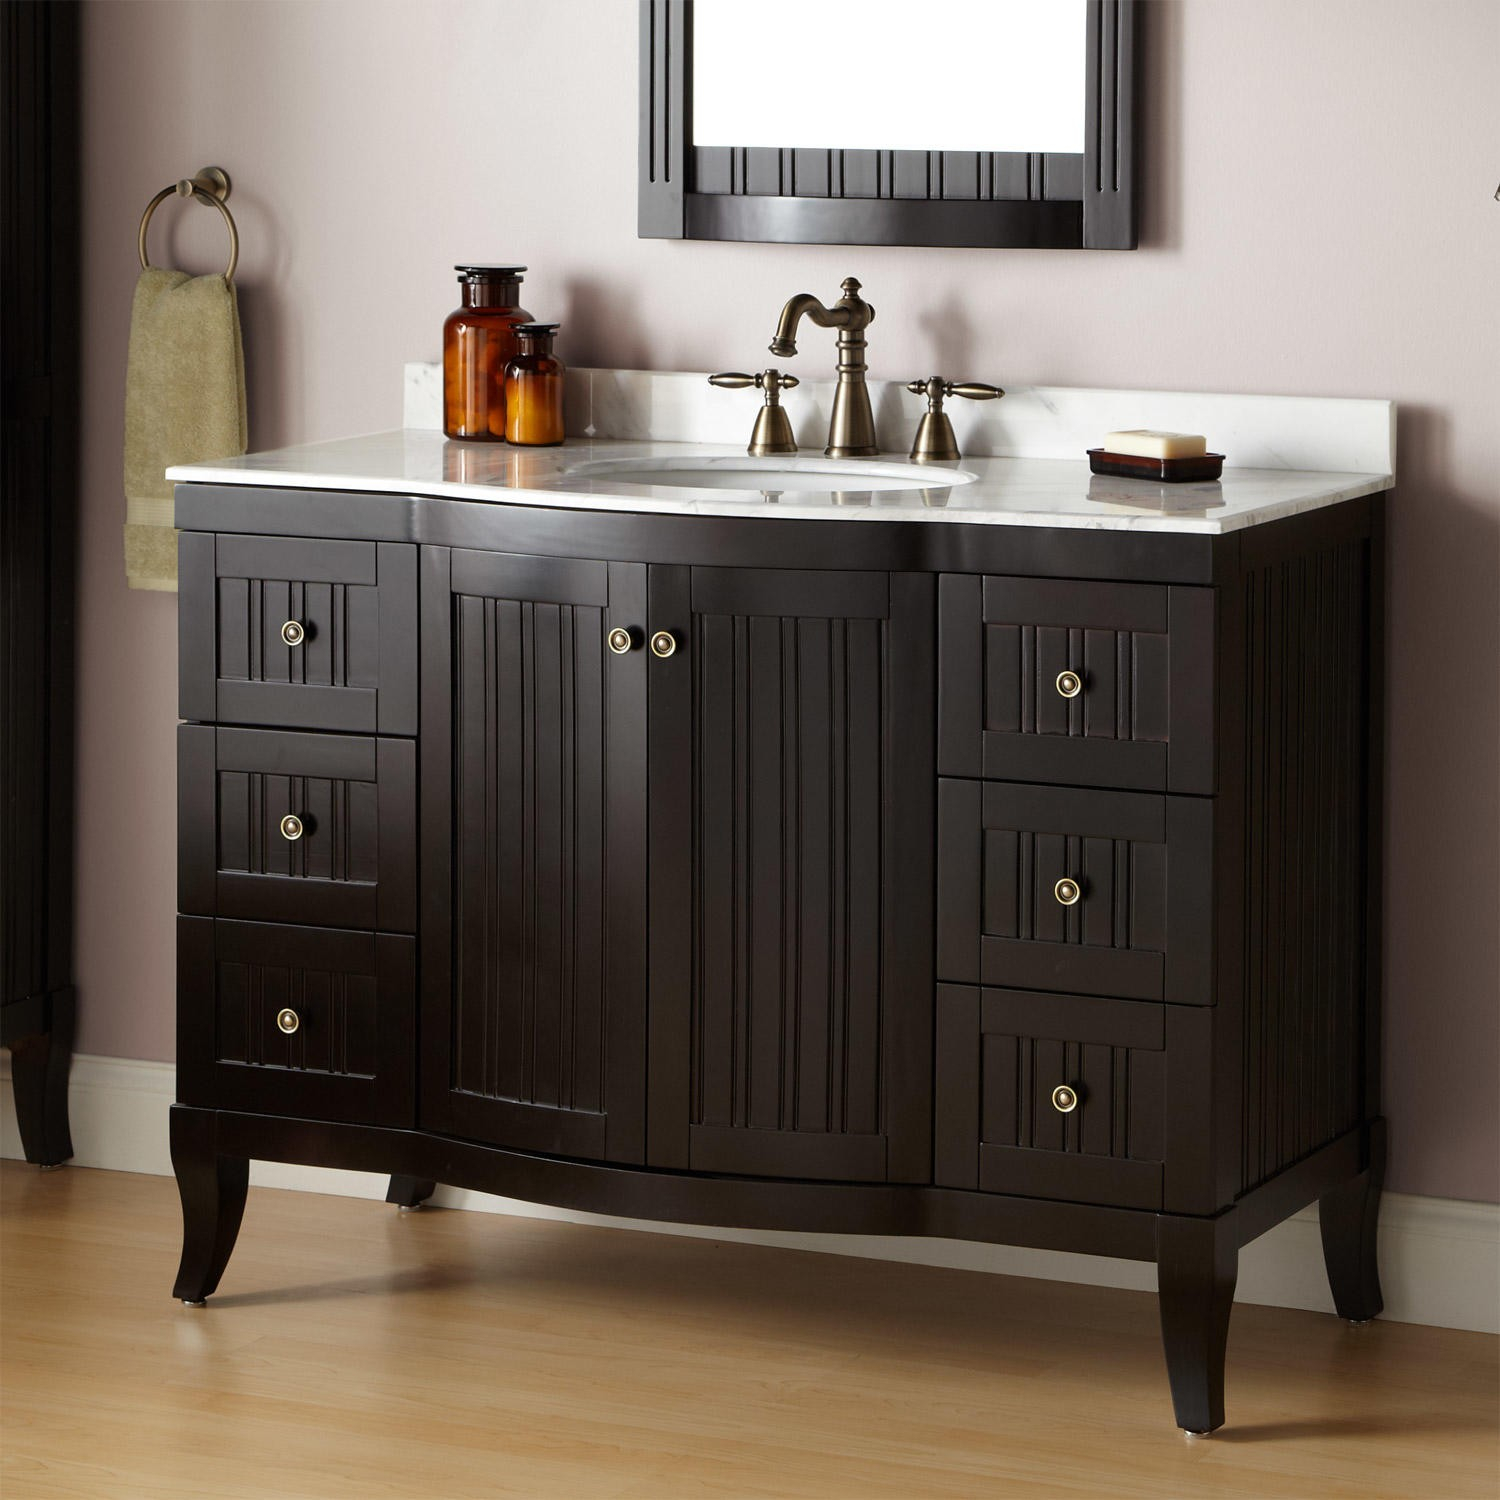 Lovely Table : Excellent Bath Vanities Without Tops 19 Unparalleled 42 Inch regarding Beautiful 42 Inch Bathroom Vanity Combo